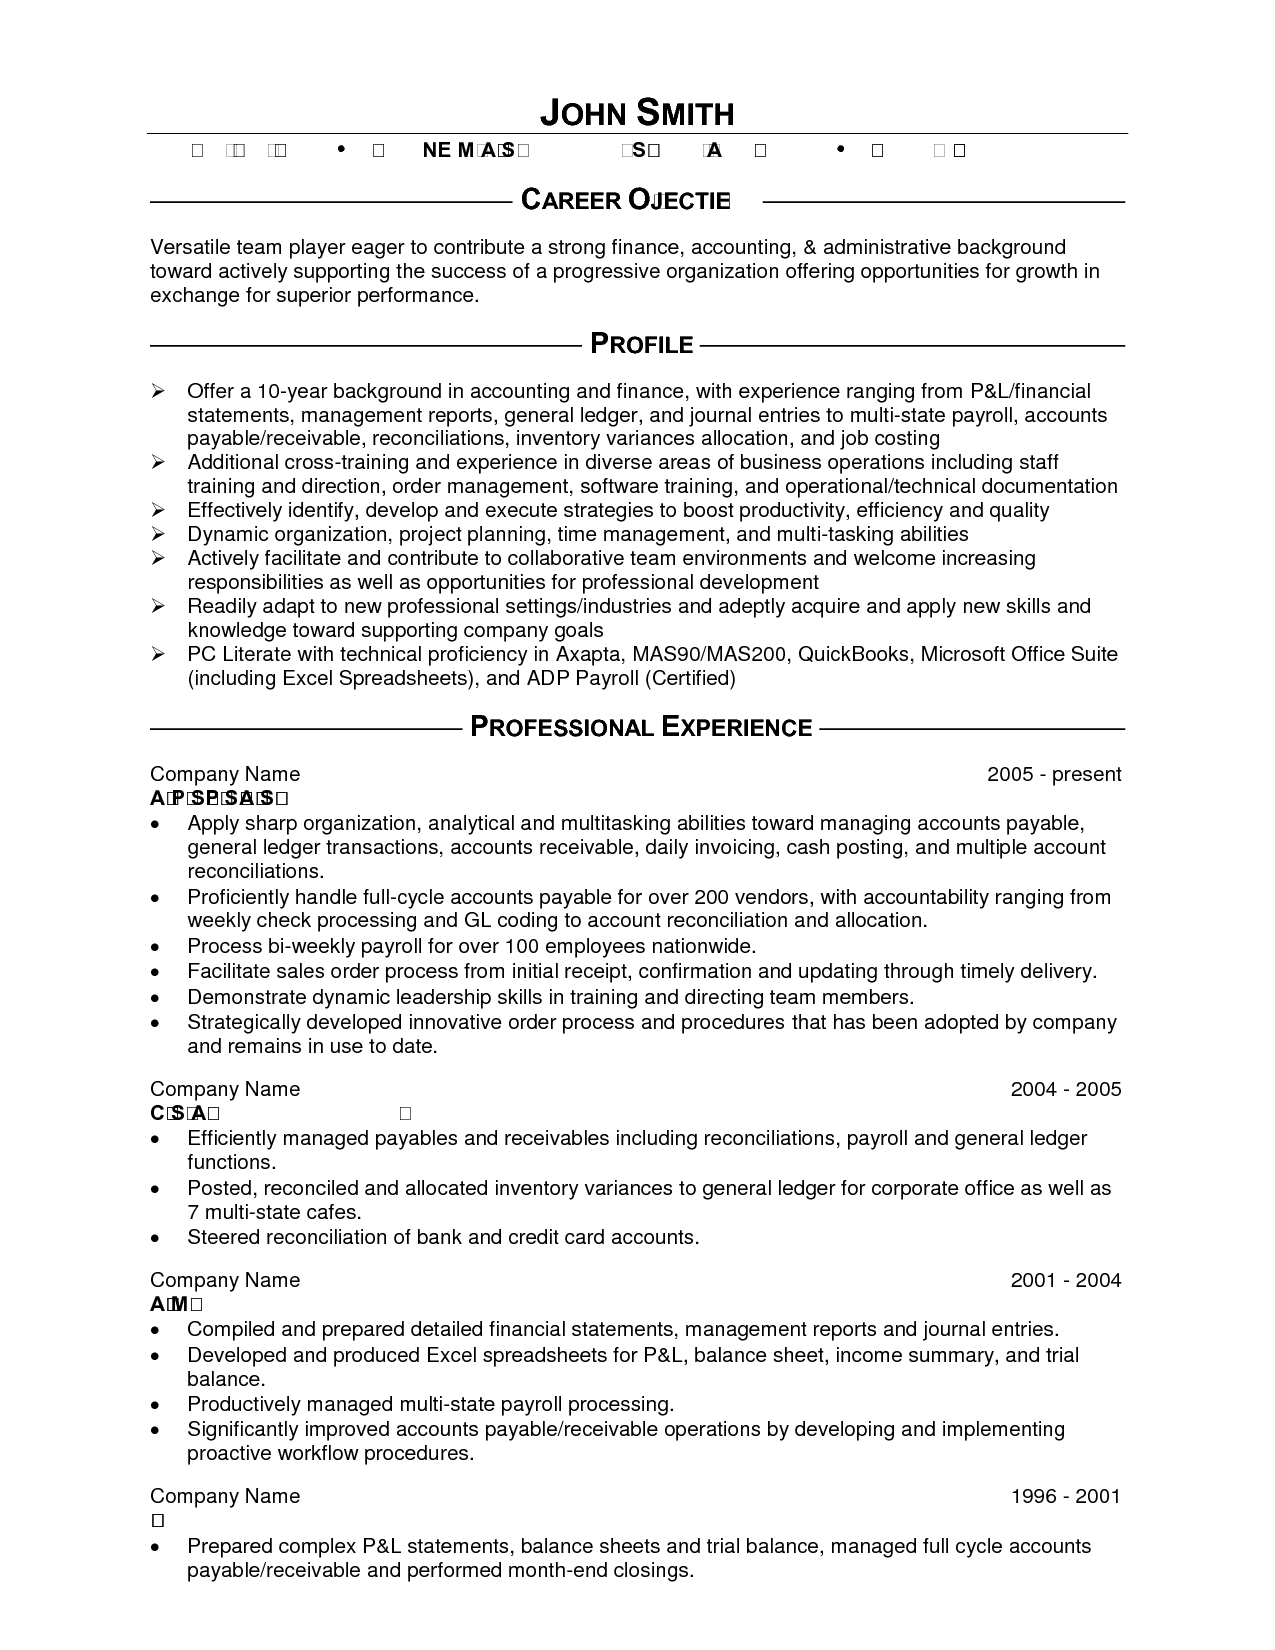 Explore Job Resume Examples, Resume Tips, And More!